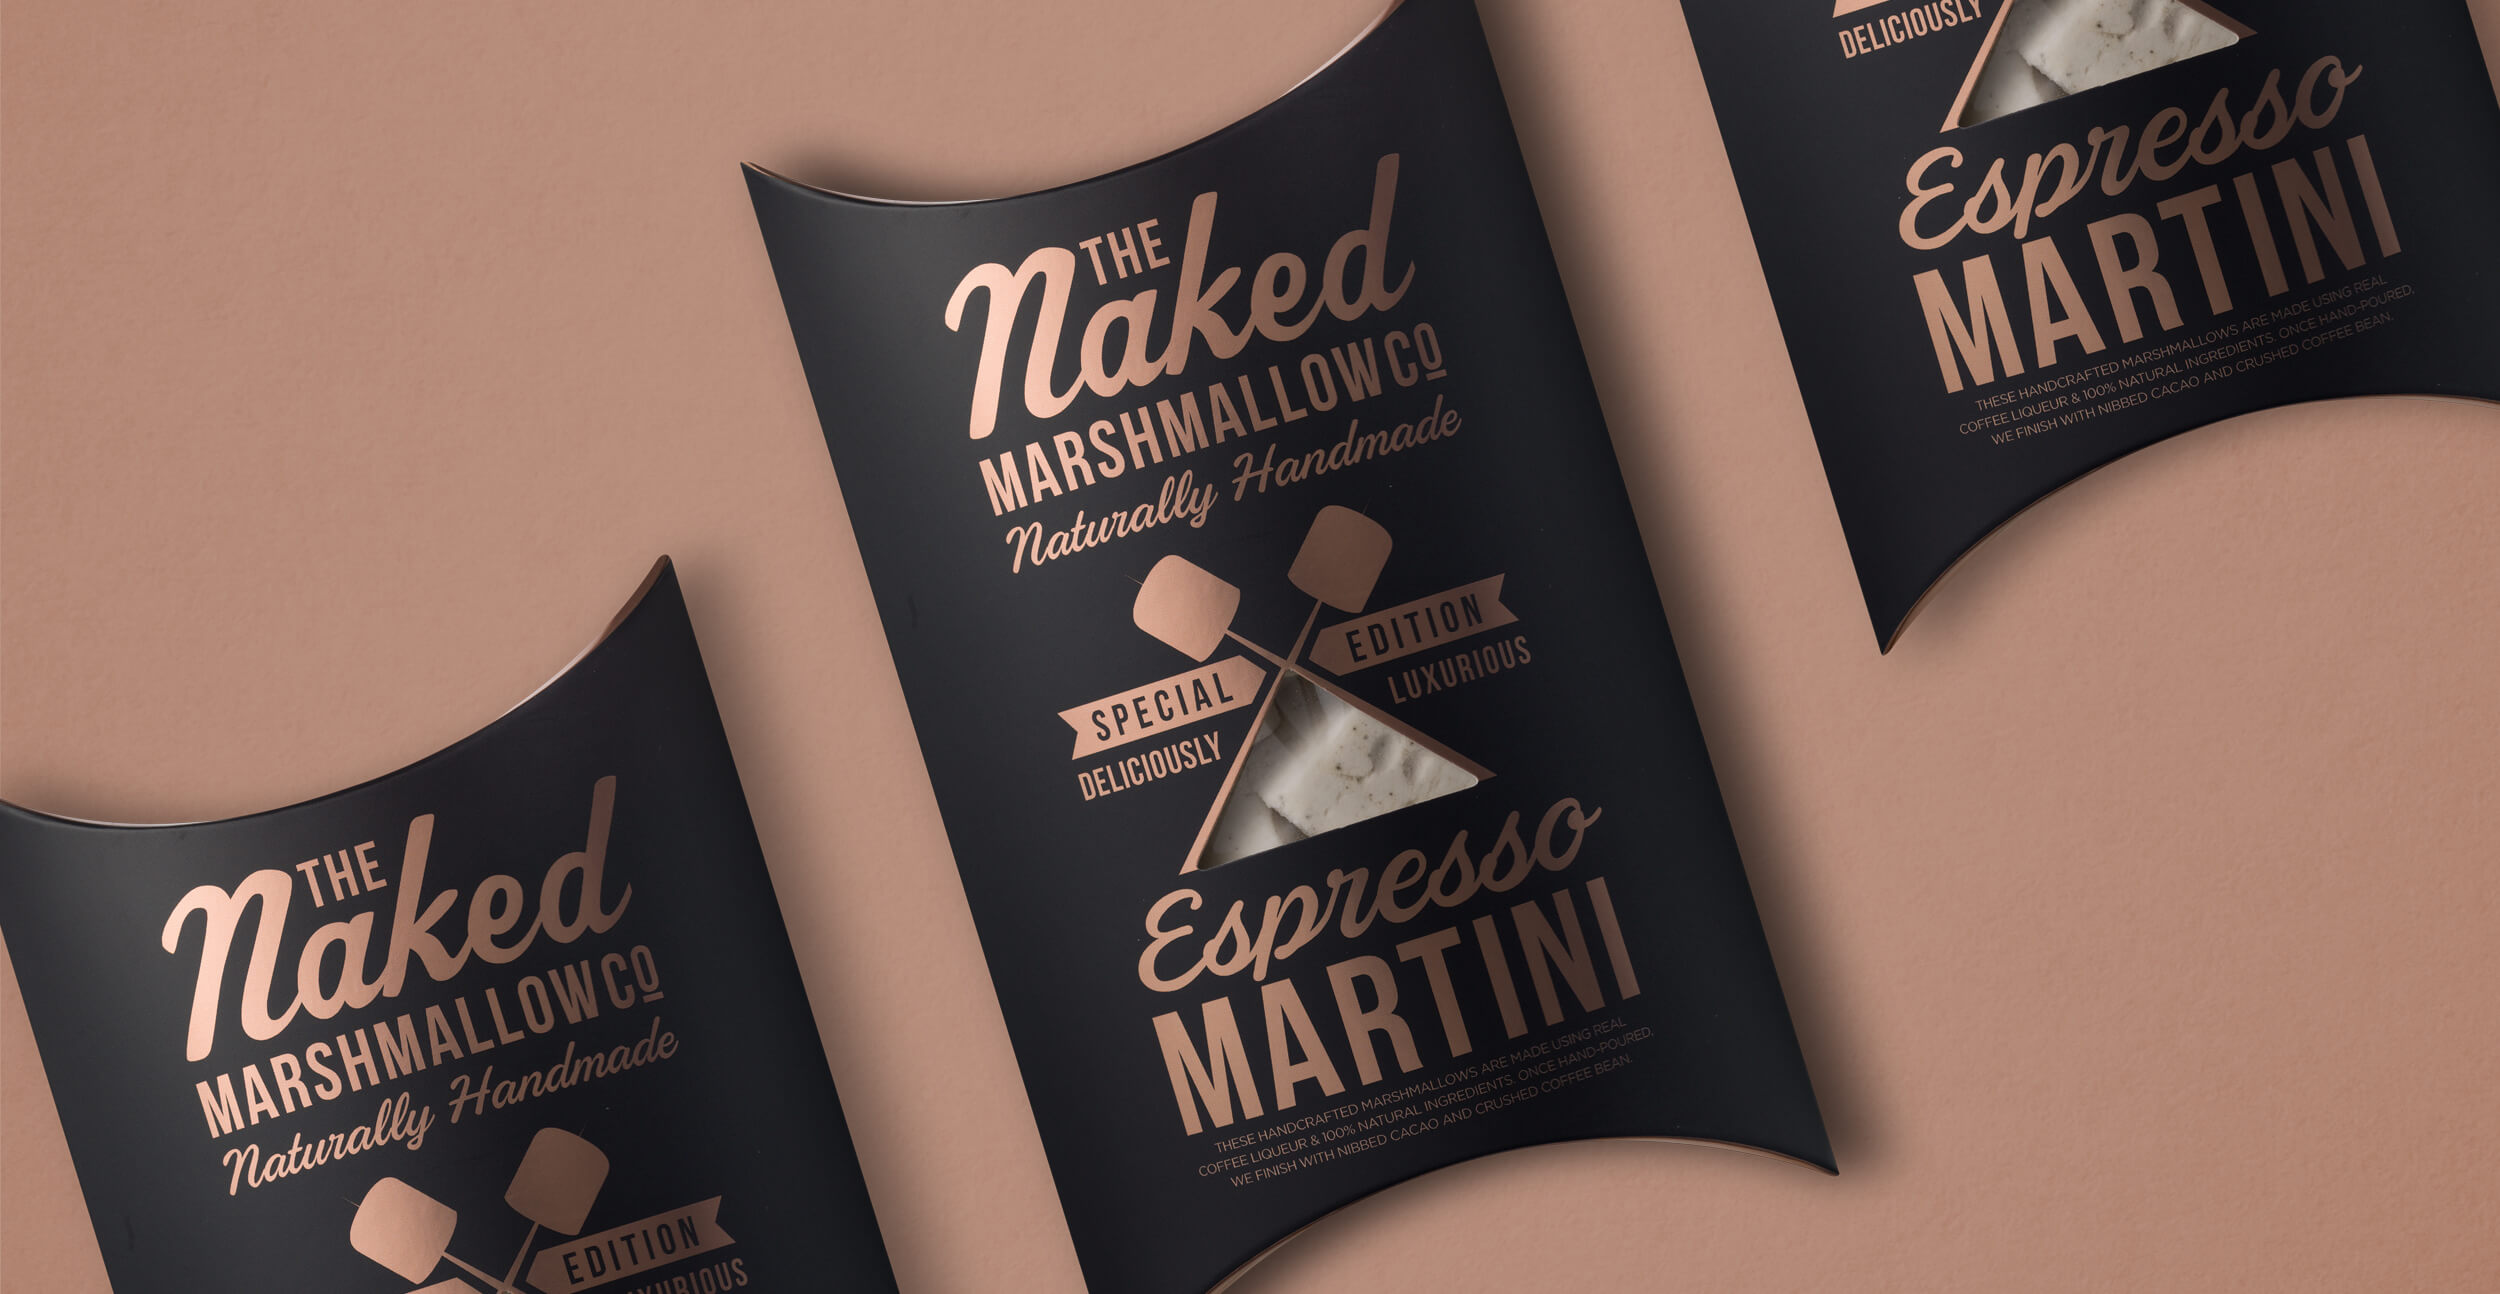 Branding and packaging design for confectionary brand The Naked Marshmallow Co by Design Happy London - Expresso Martini